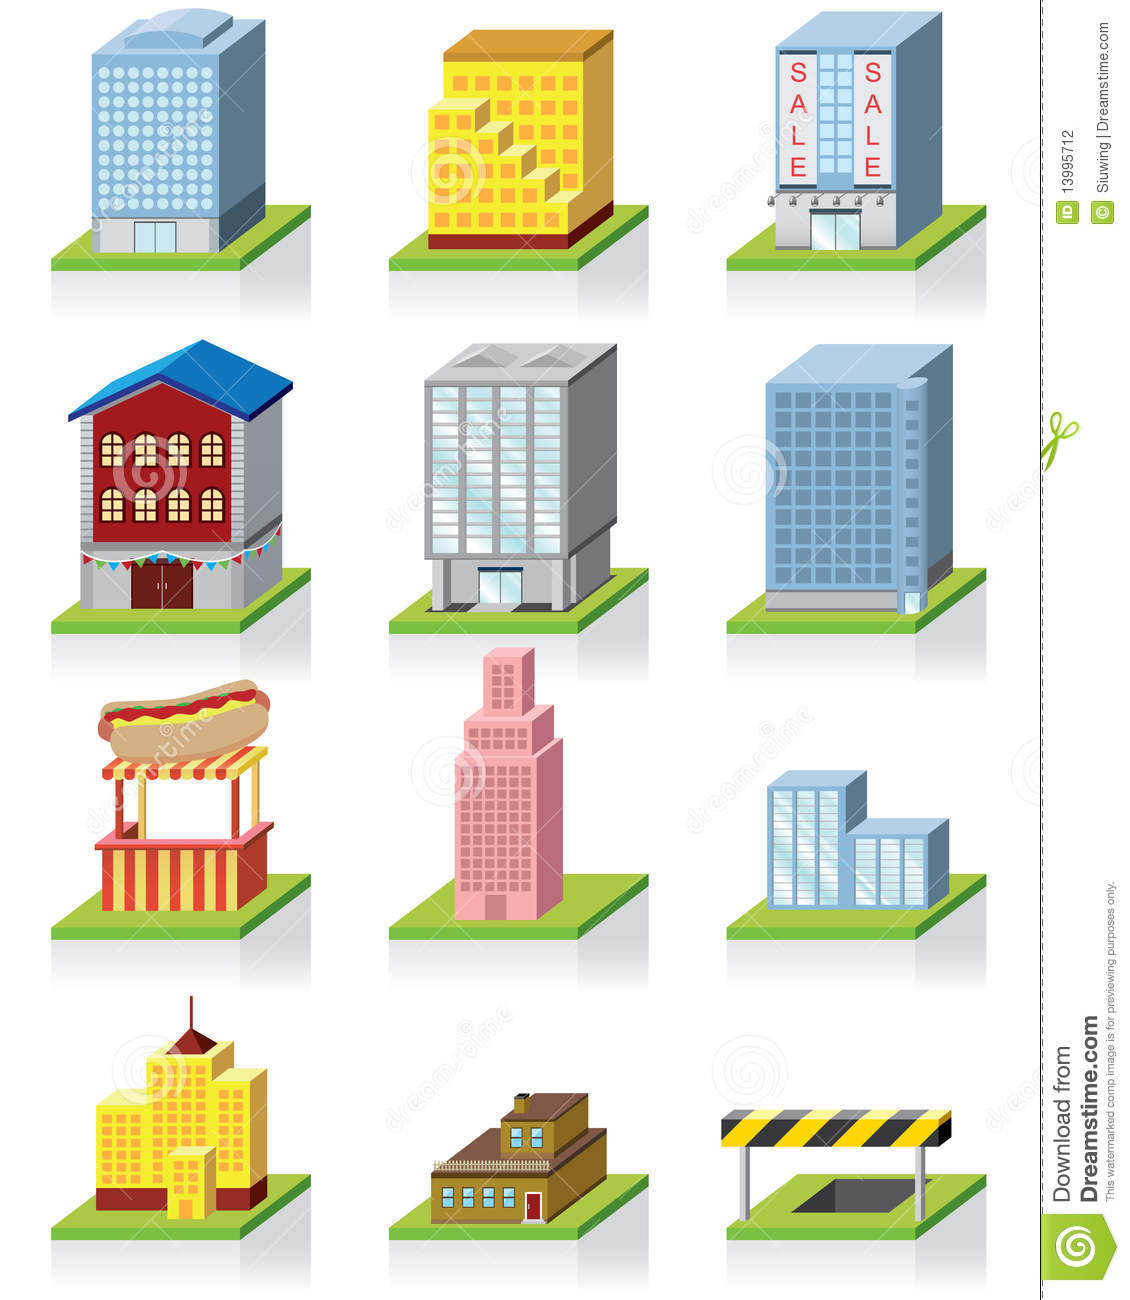 Commercial building icon 3d illustration stock vector for Build house online 3d free